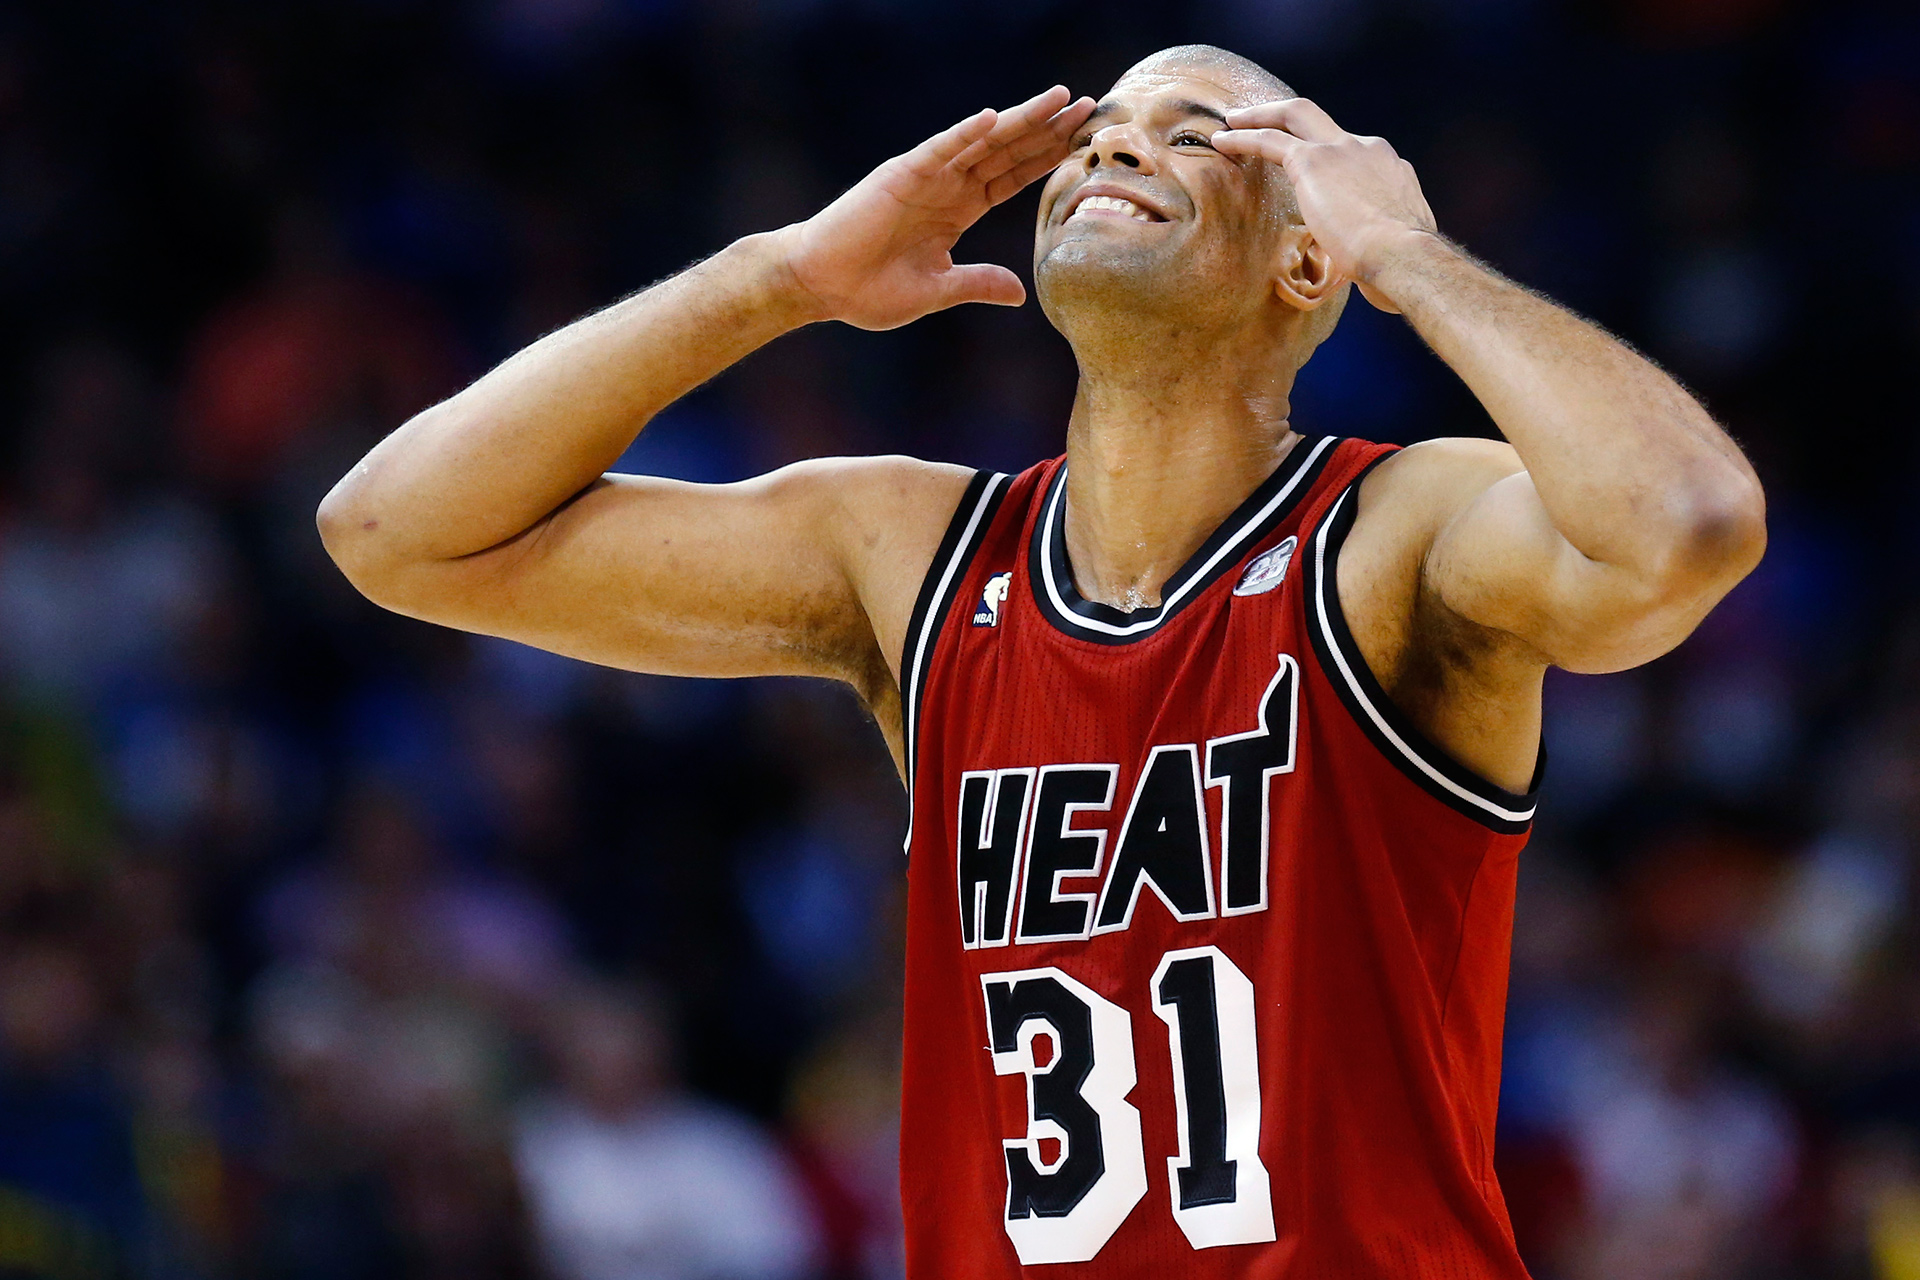 shane-battier-AP_320089219284